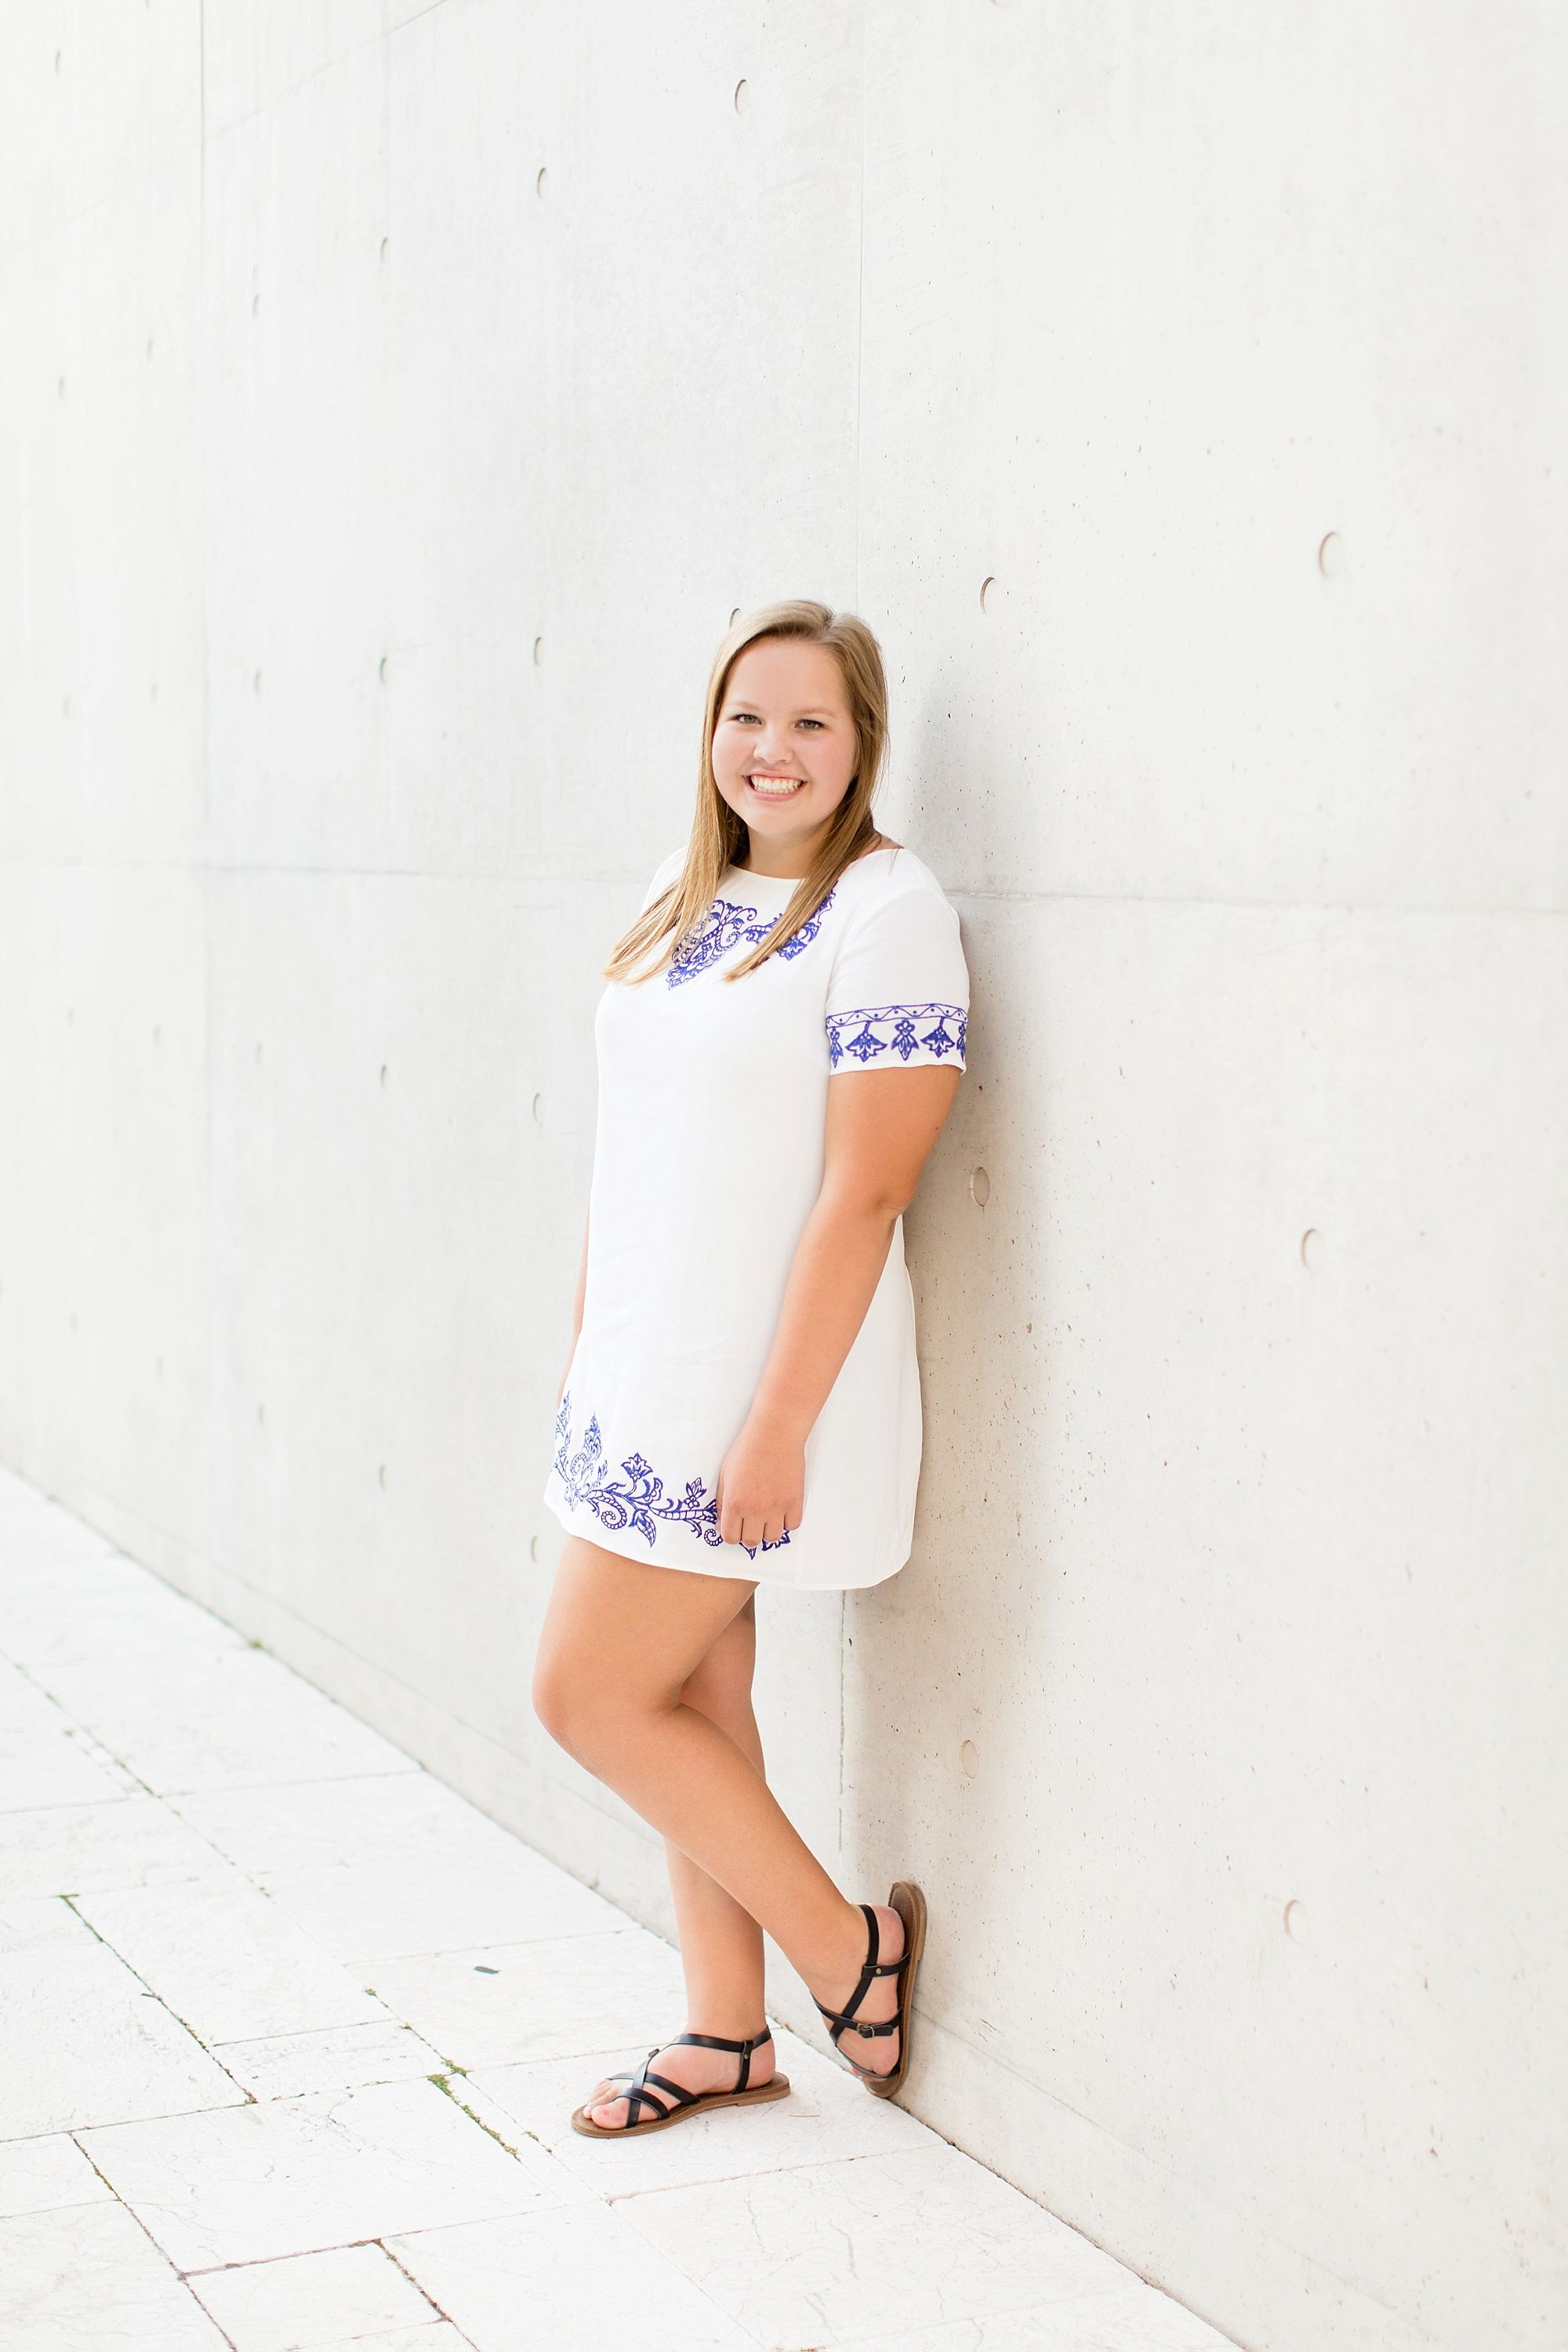 Wear to what for senior class pictures catalog photo